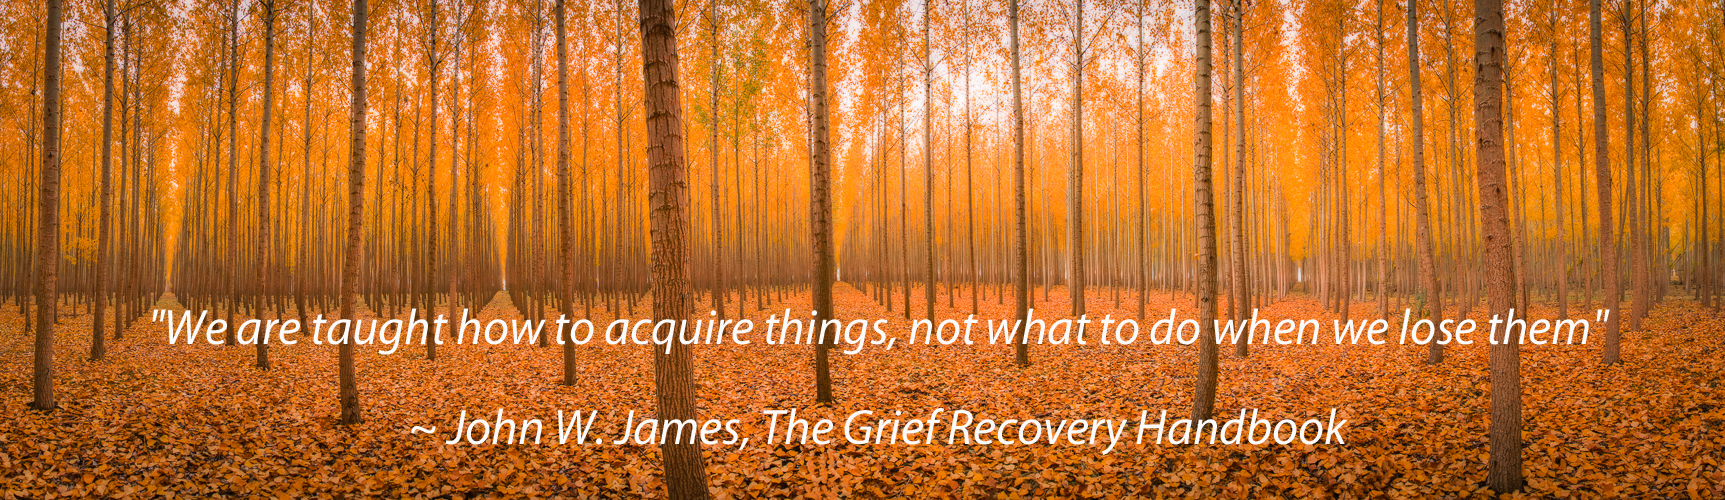 We are taught to acquire things not what to do when we lose them grief loss